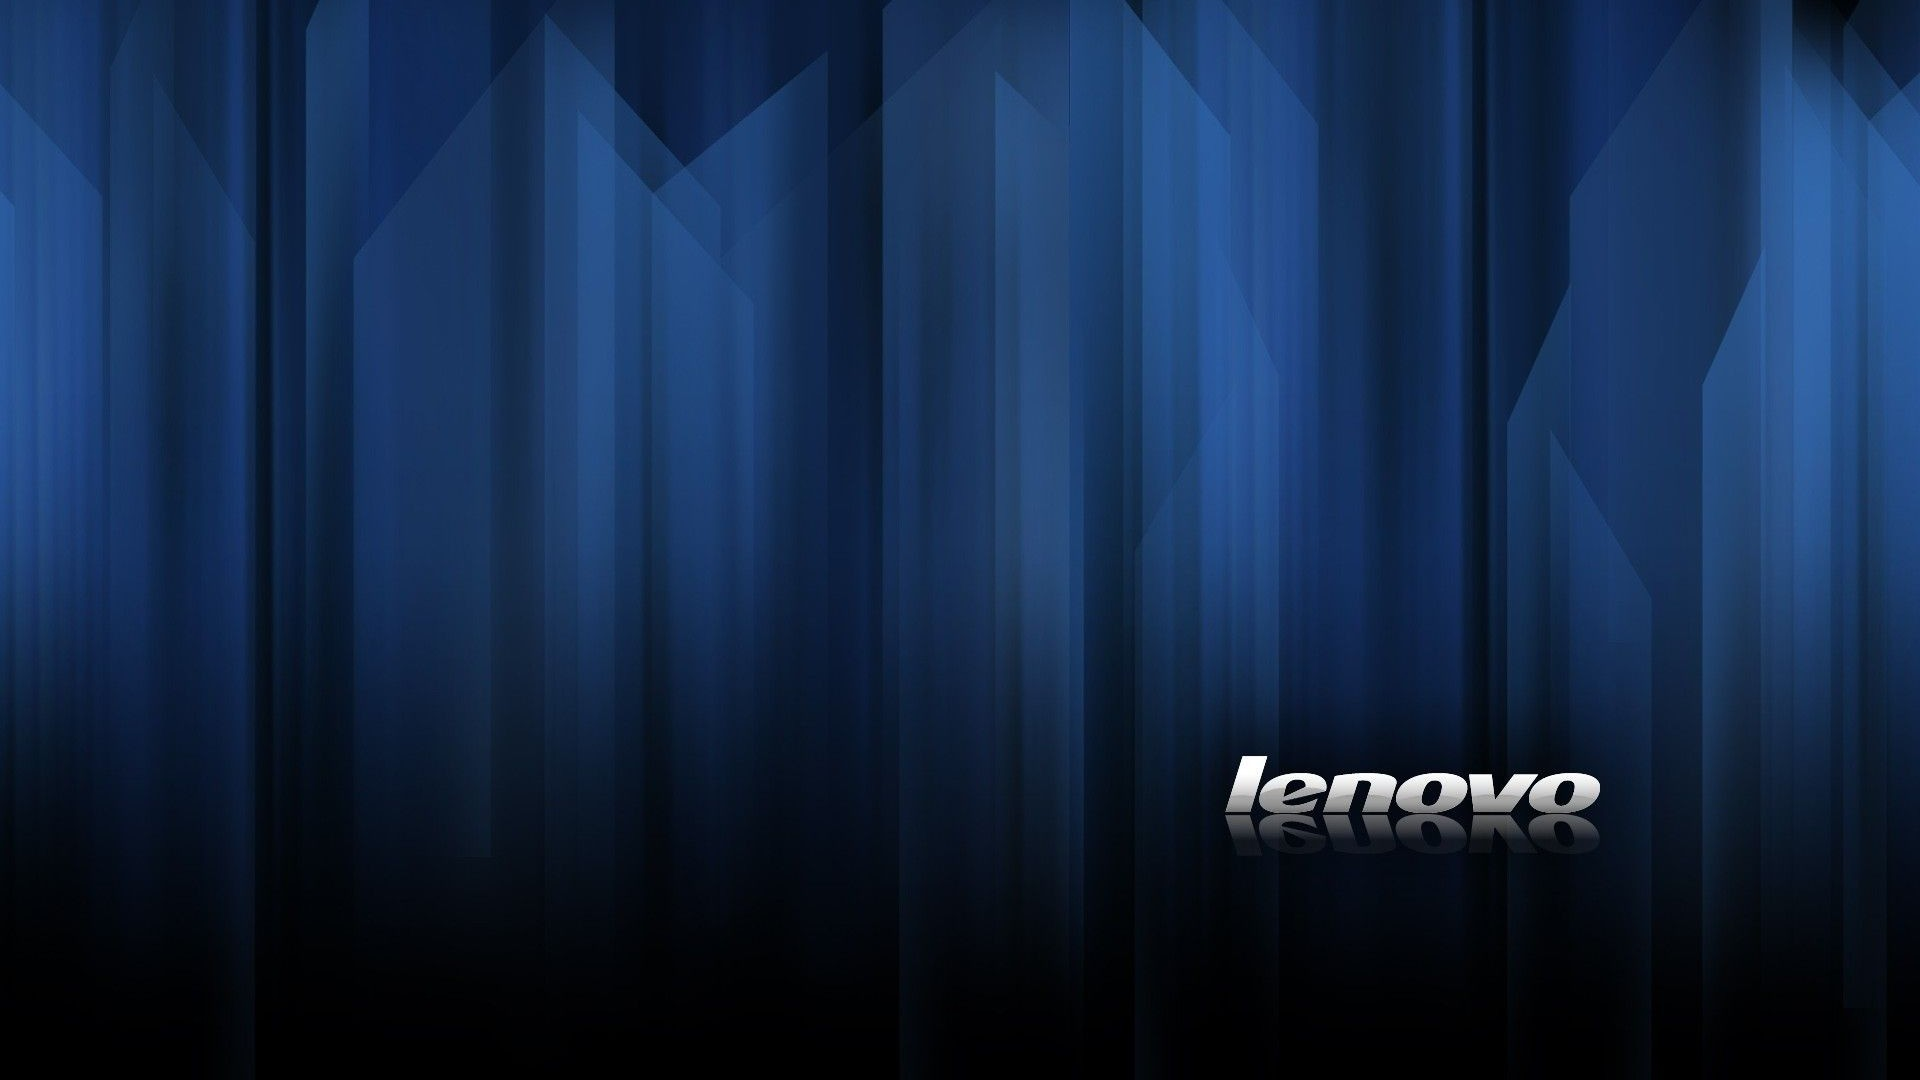 Res: 1920x1080, Download Wallpaper  lenovo, computer, company, logo, abstract Full  HD 1080p HD Background